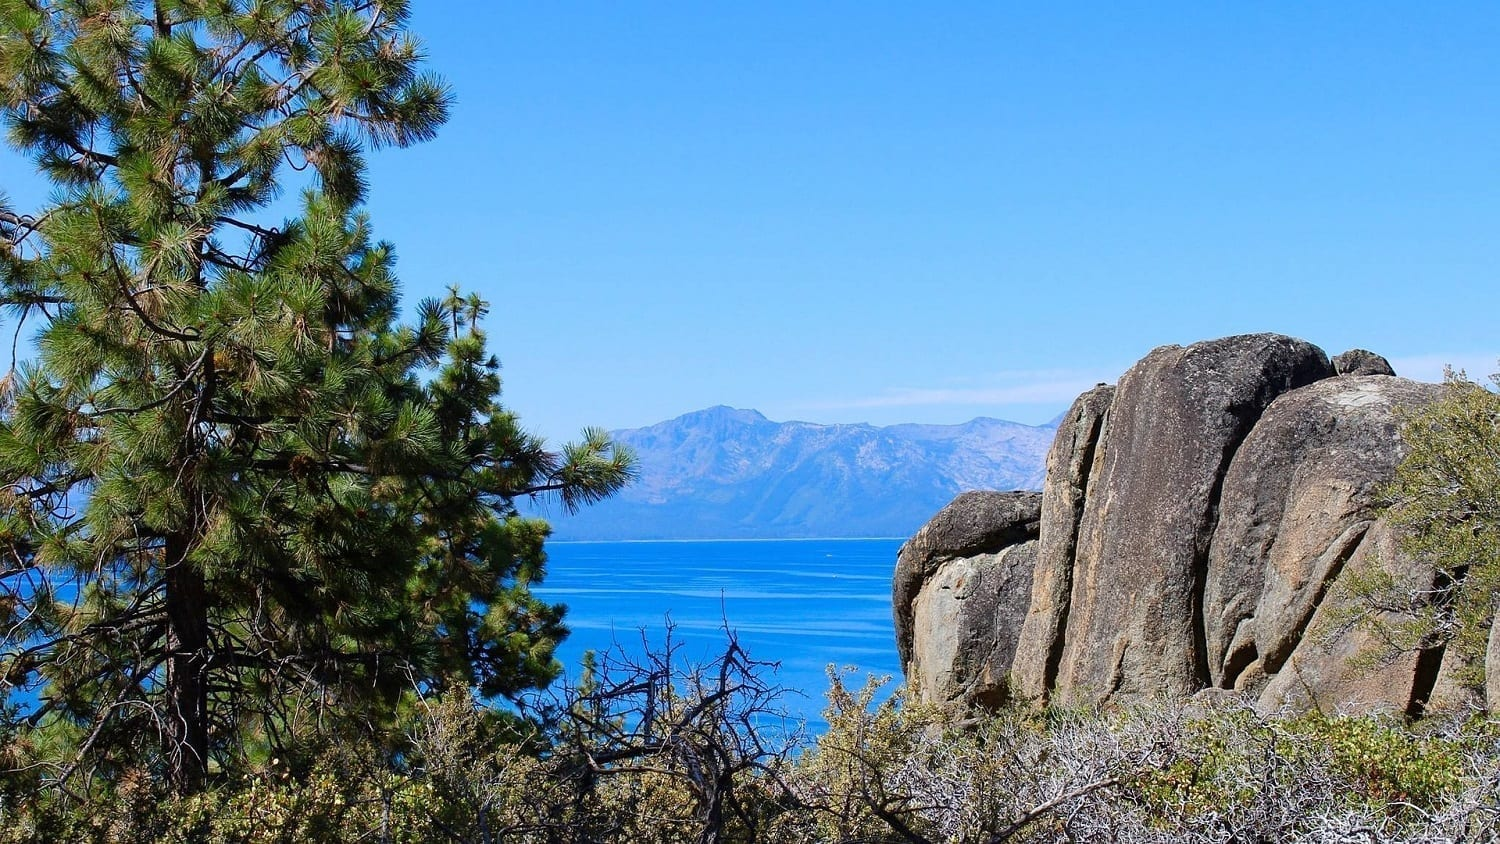 Lake Tahoe with Ponderosa Pine and rocks, photo credit: Pixabay: Tim Fagan